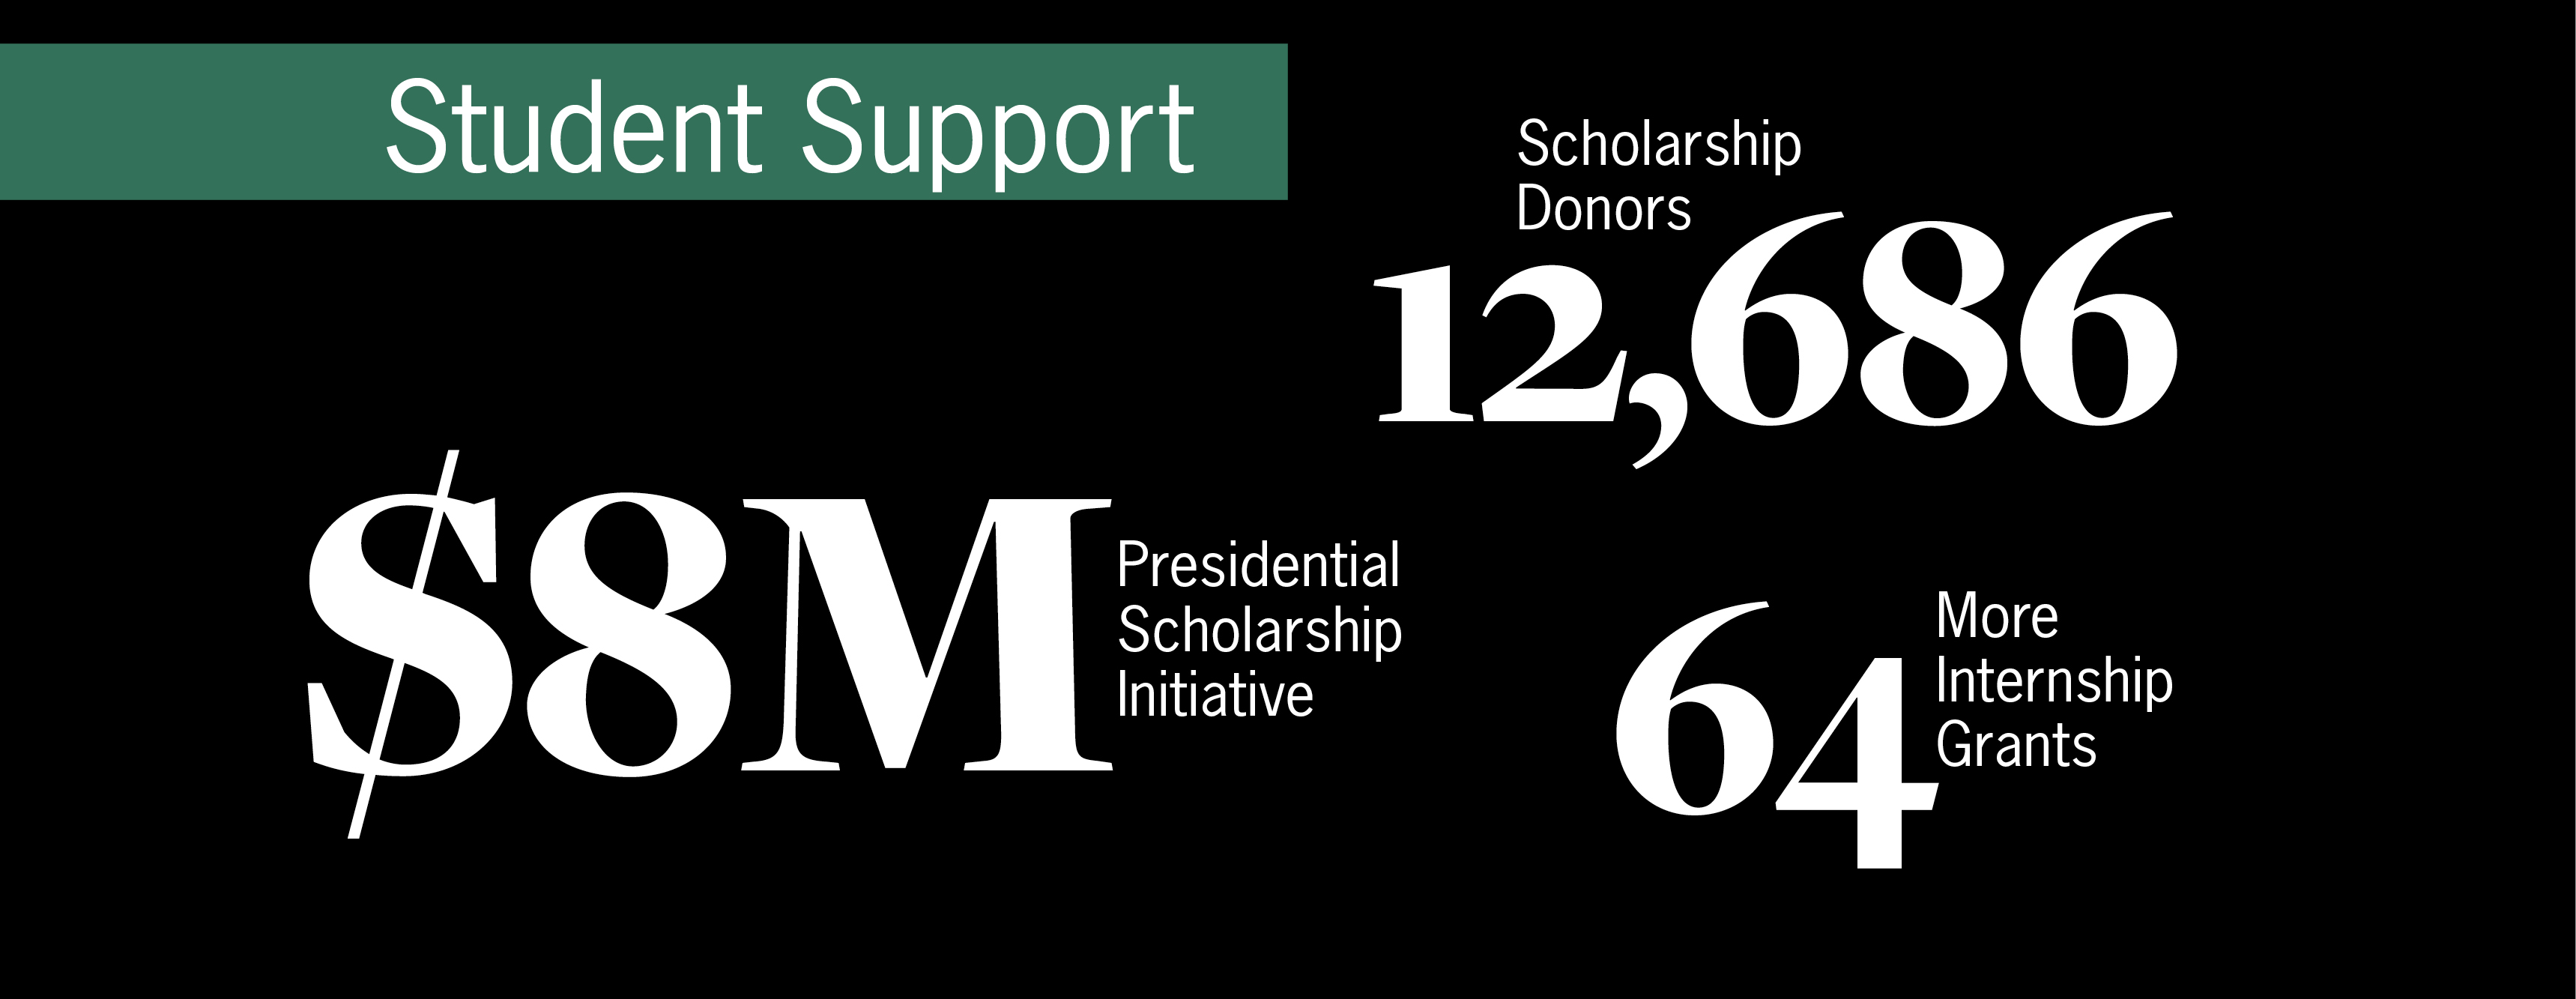 Infographic of Student support scholarship and donors